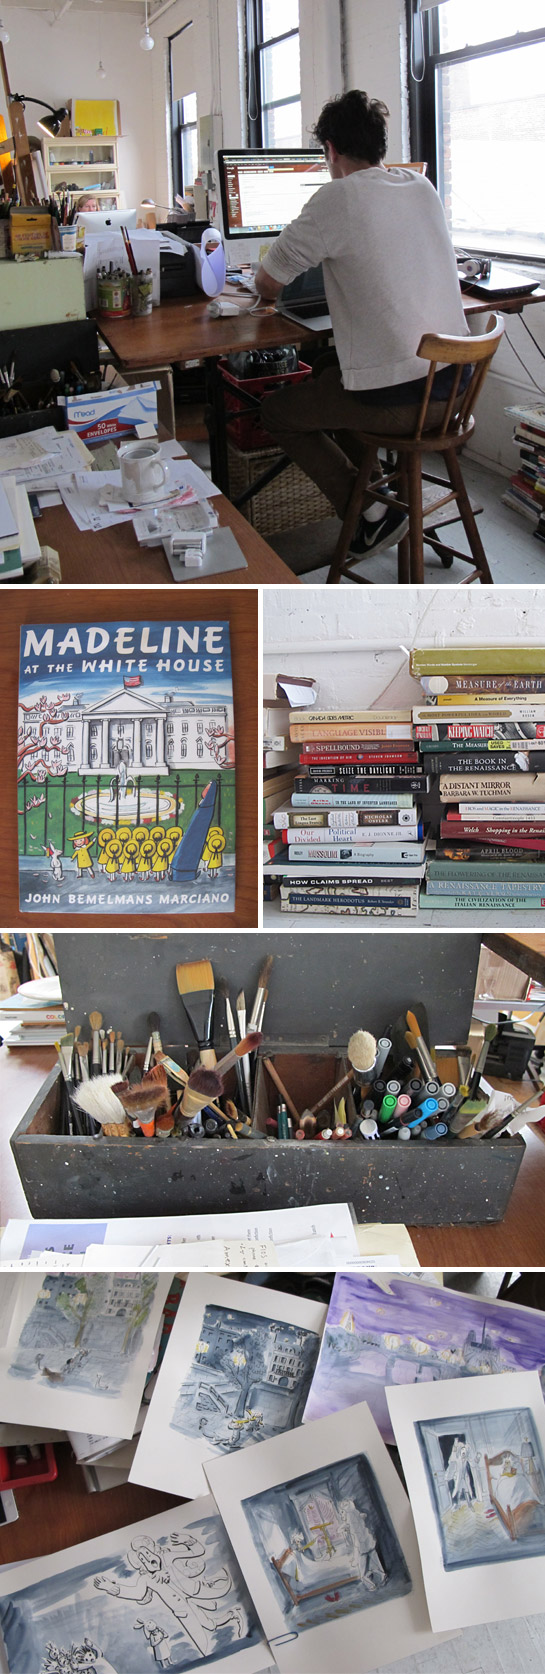 """JOHN BEMELMANS MARCIANO'S WORK SPACE. From top: Johnny at his desk; A recent Madeline; Piles of book for research; lots of brushes; Potential finals for JBM's upcoming book, Madeline and the Old House in Paris.""""Most books I've probably done have one or two night scenes and this entire book takes place at night so I'm like, how do you do everything that's at night and not make it always look the same? So I was trying different colors and line work."""""""